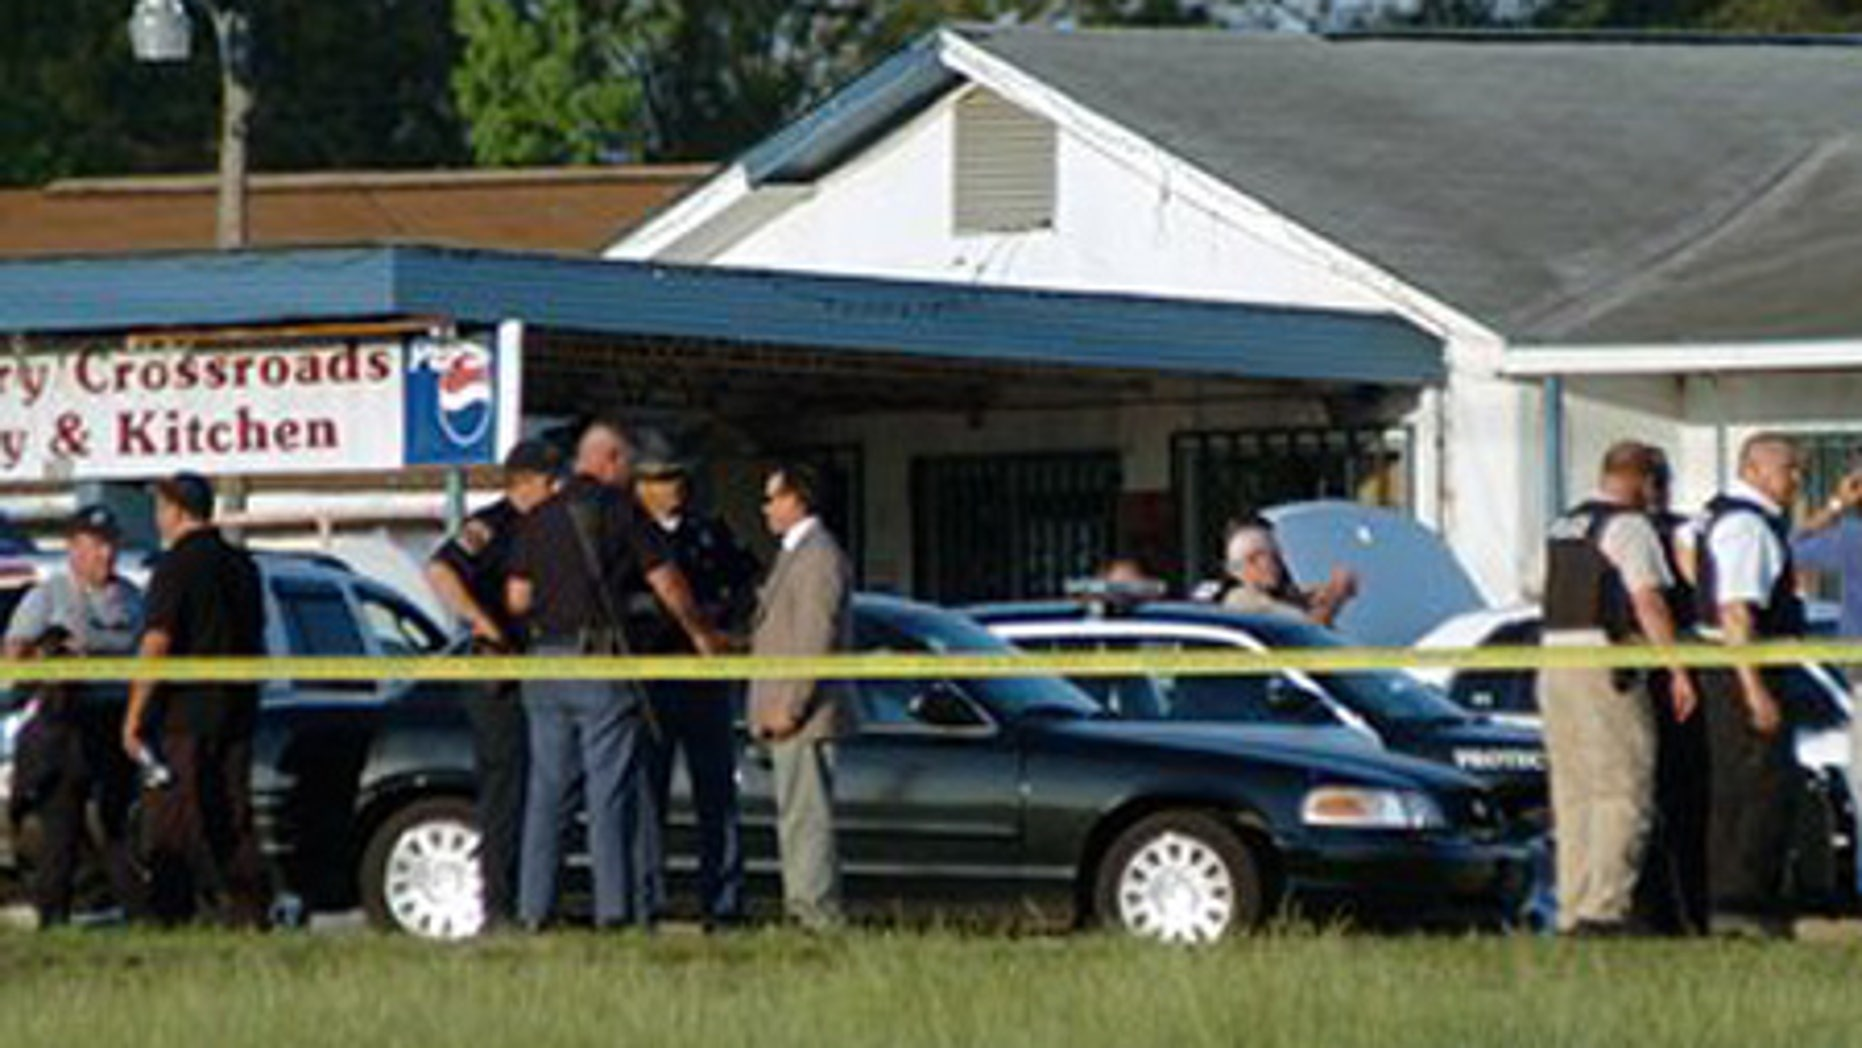 April 24: Law enforcement personnel and first responders work the scene of a shooting that left one police officer and the suspect dead in Alabama.